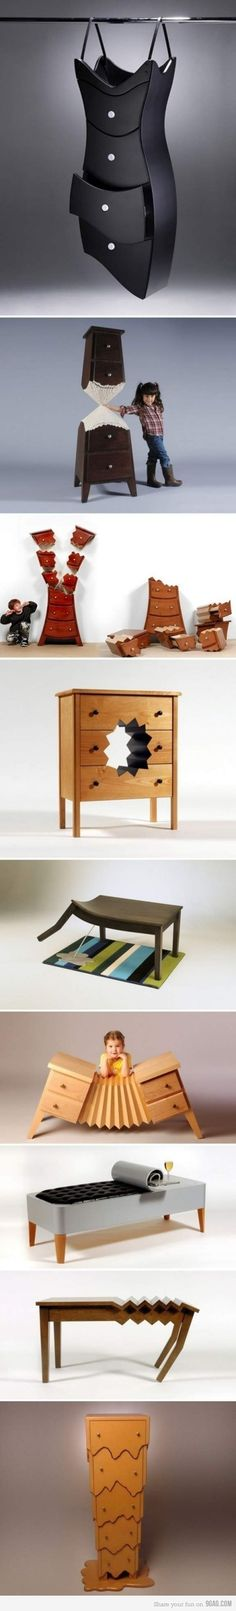 Crazy furniture cool!!!!